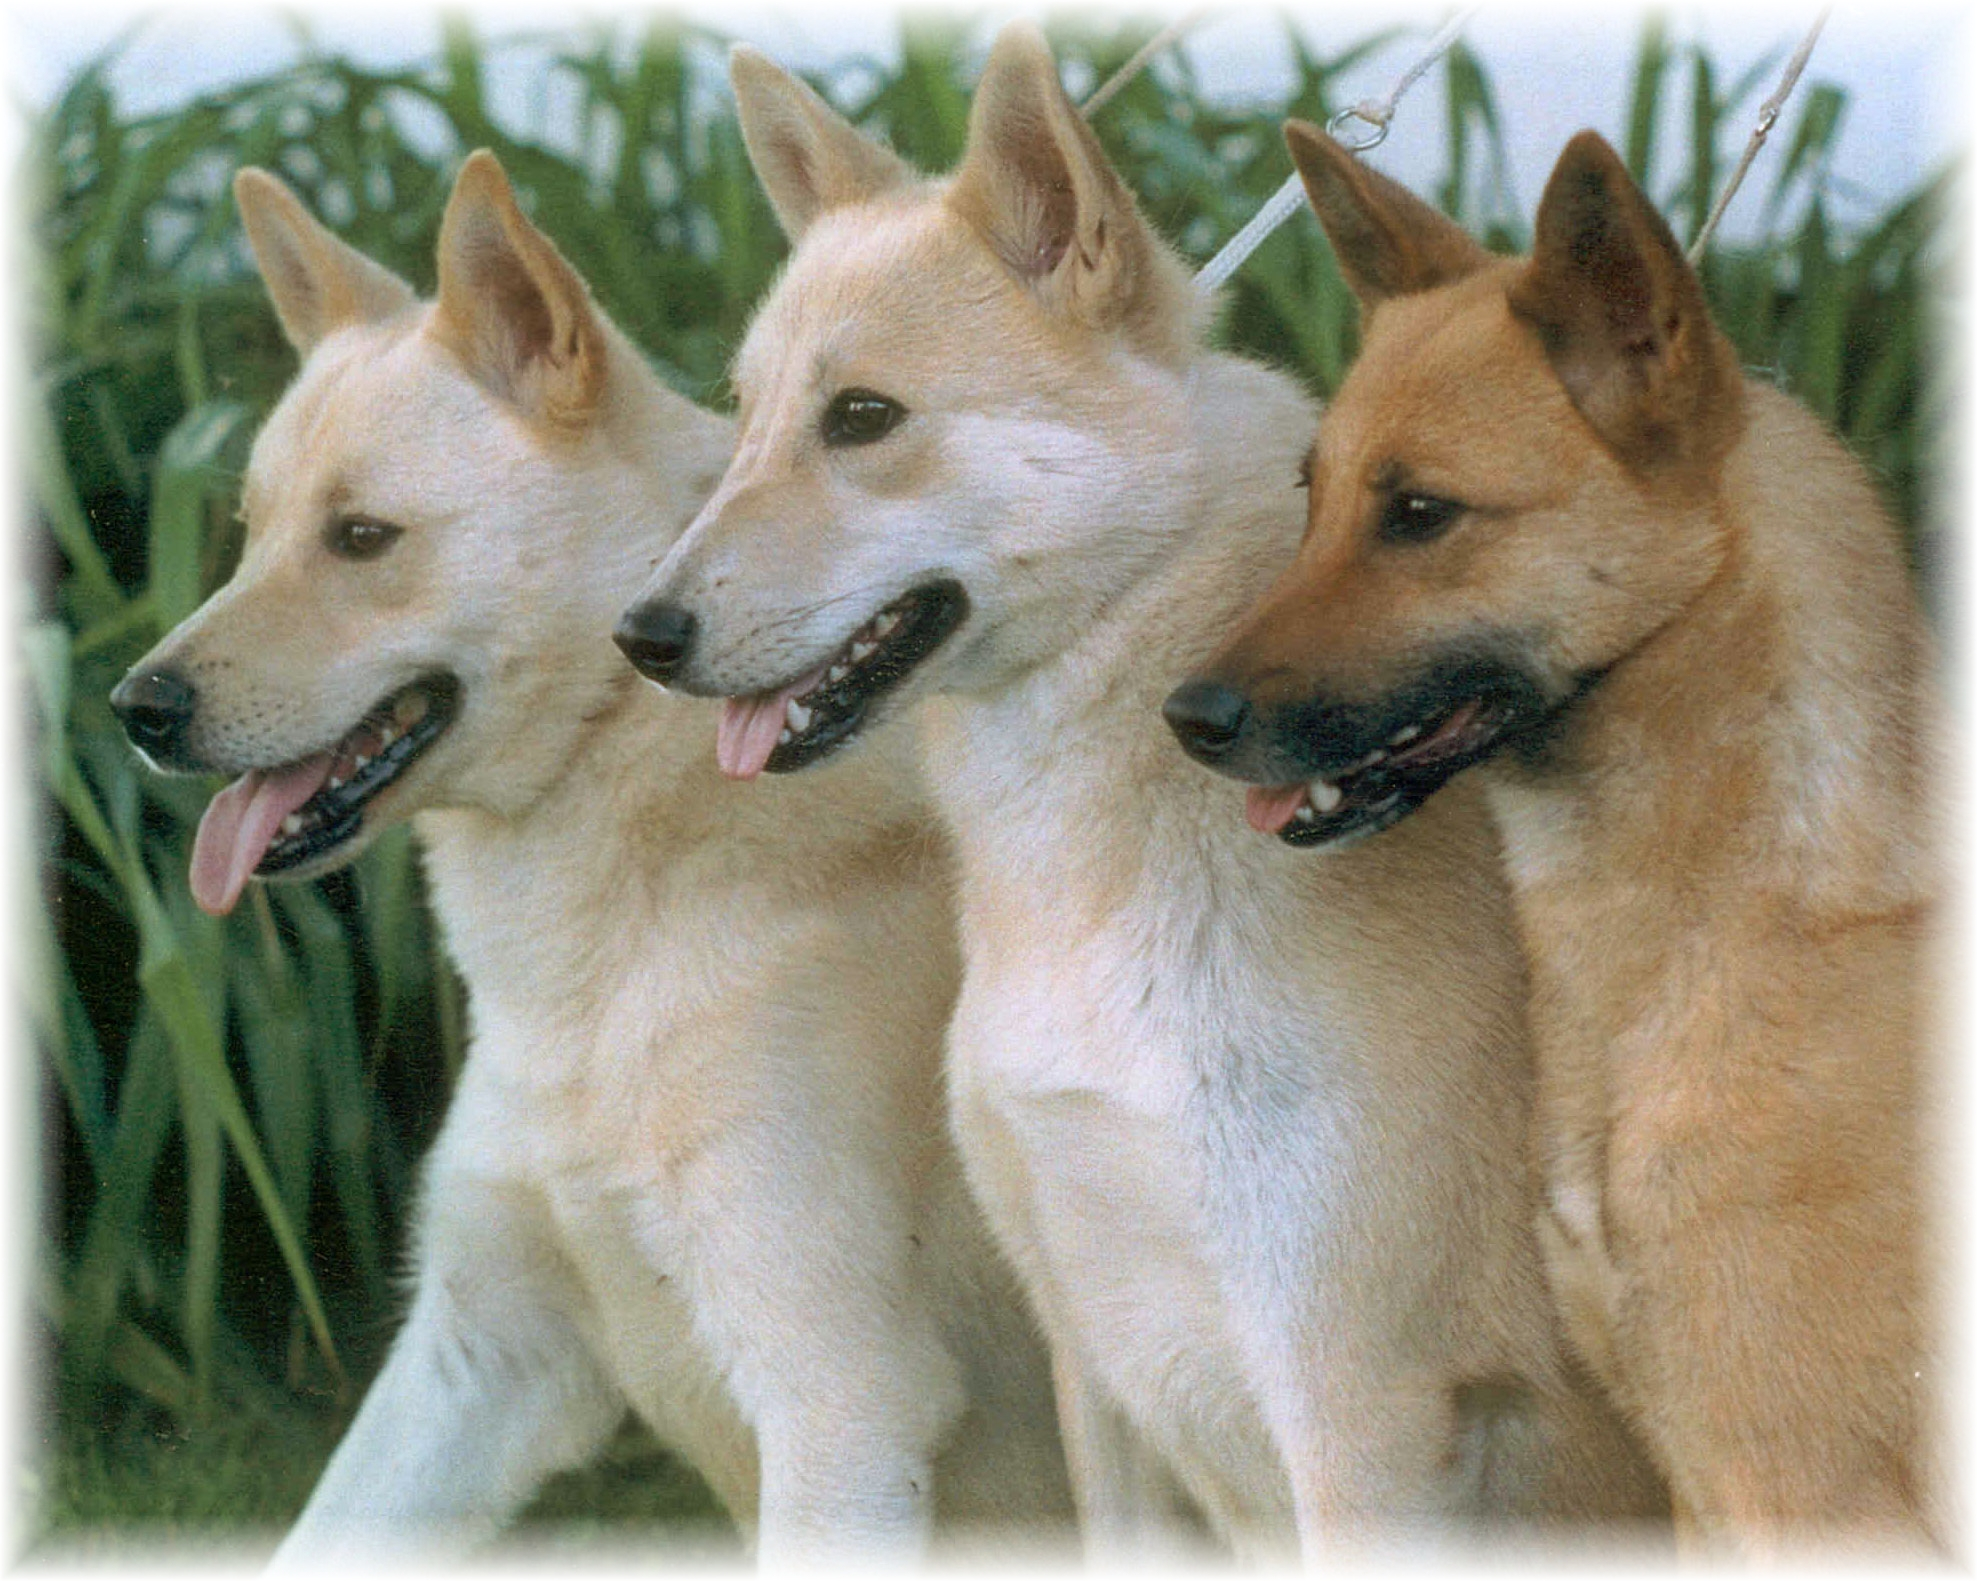 The Canaan Dog is a pariah dog type that is naturally alert